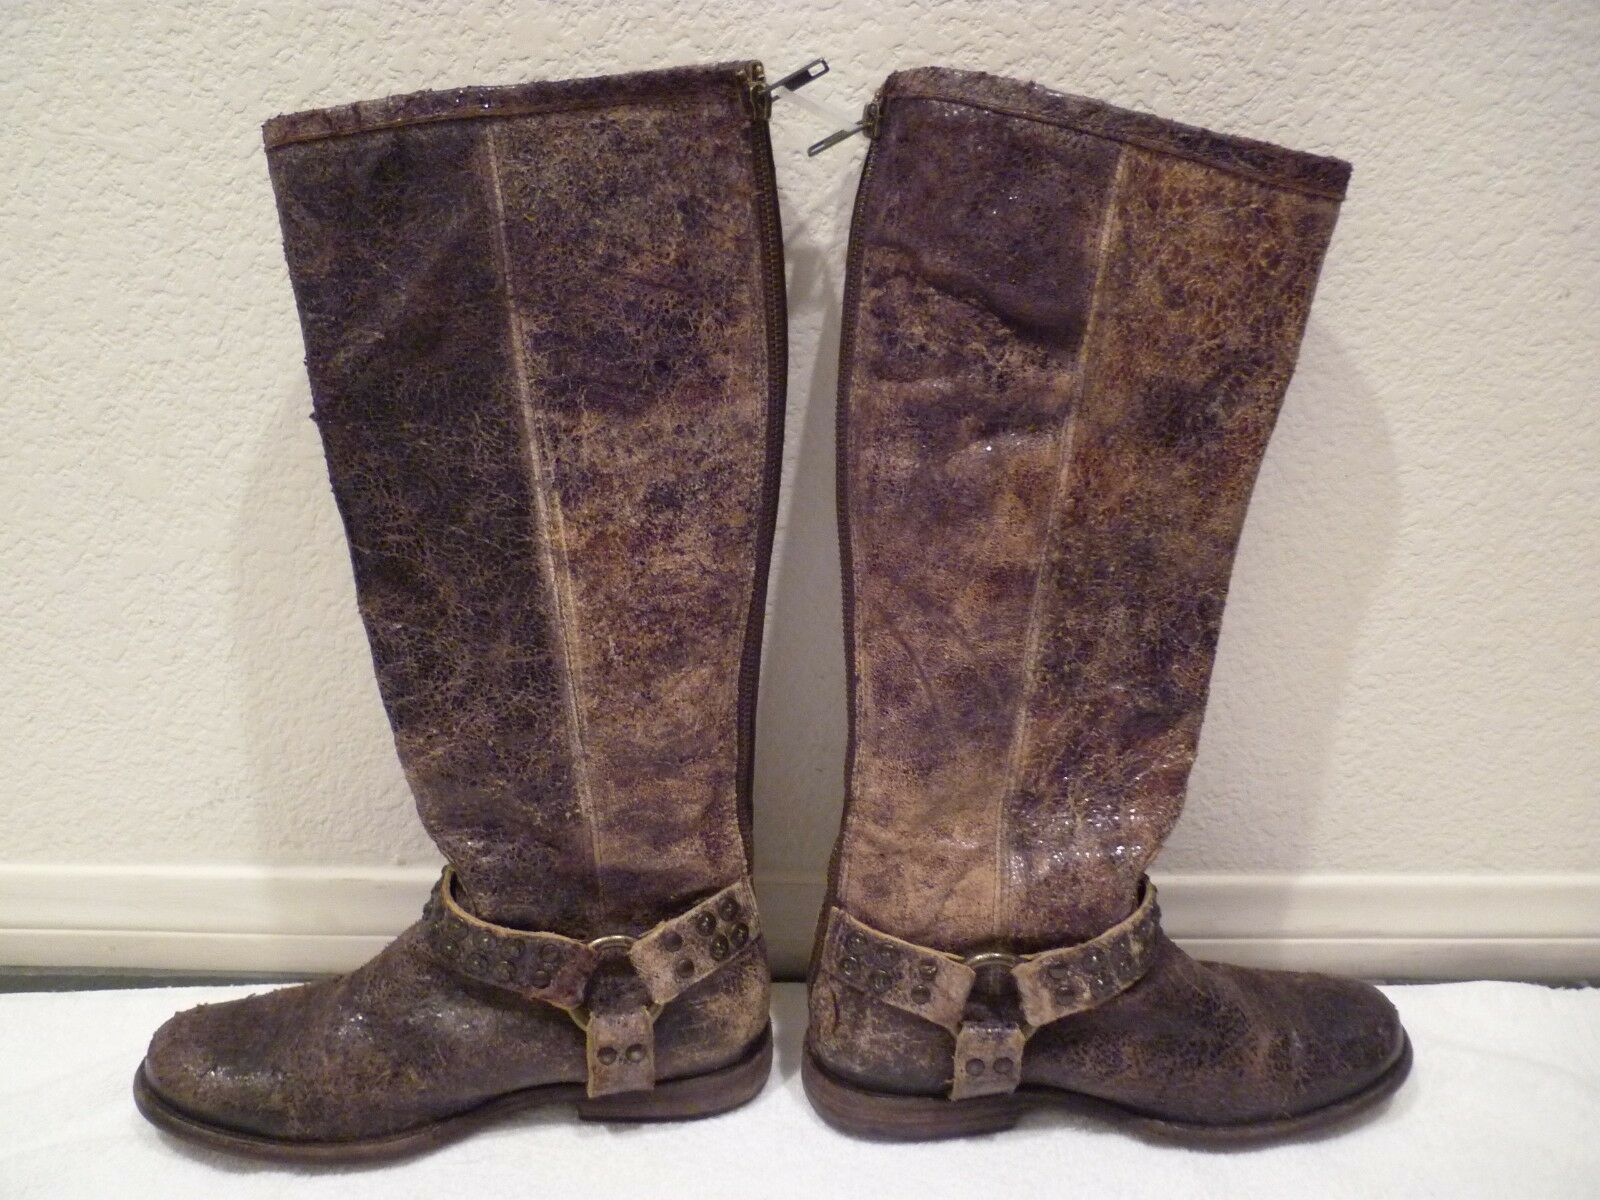 398 FRYE Tall Phillip Studded Distressed Chocolate Brown Harness Boots SZ 6.5